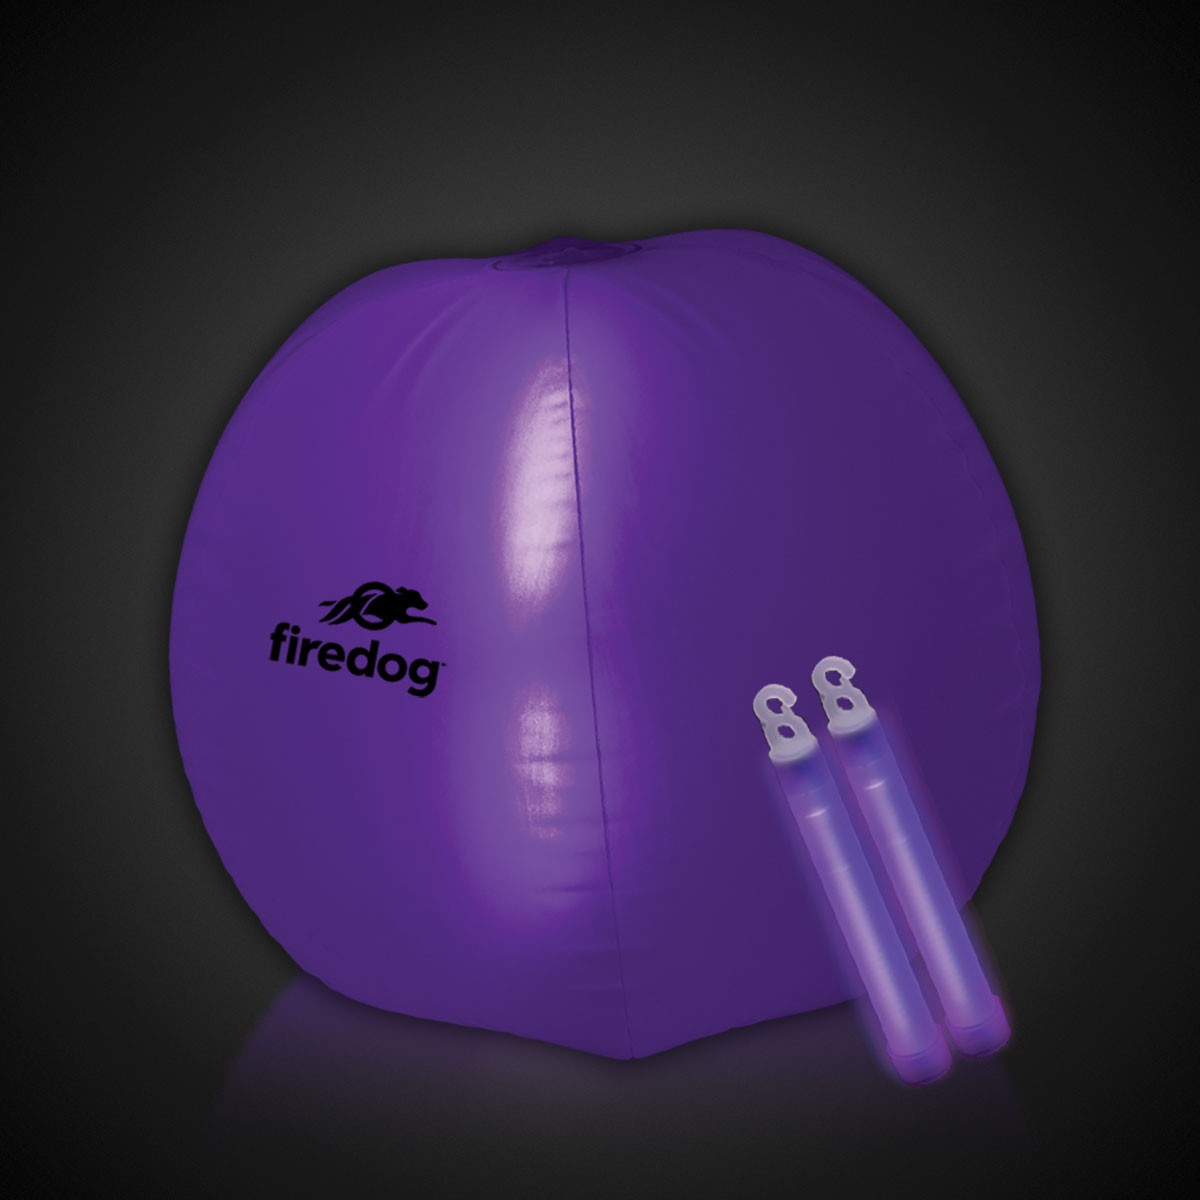 24 Inch Inflatable Beach Ball with 2 - 6 Inch PURPLE Glow Sticks